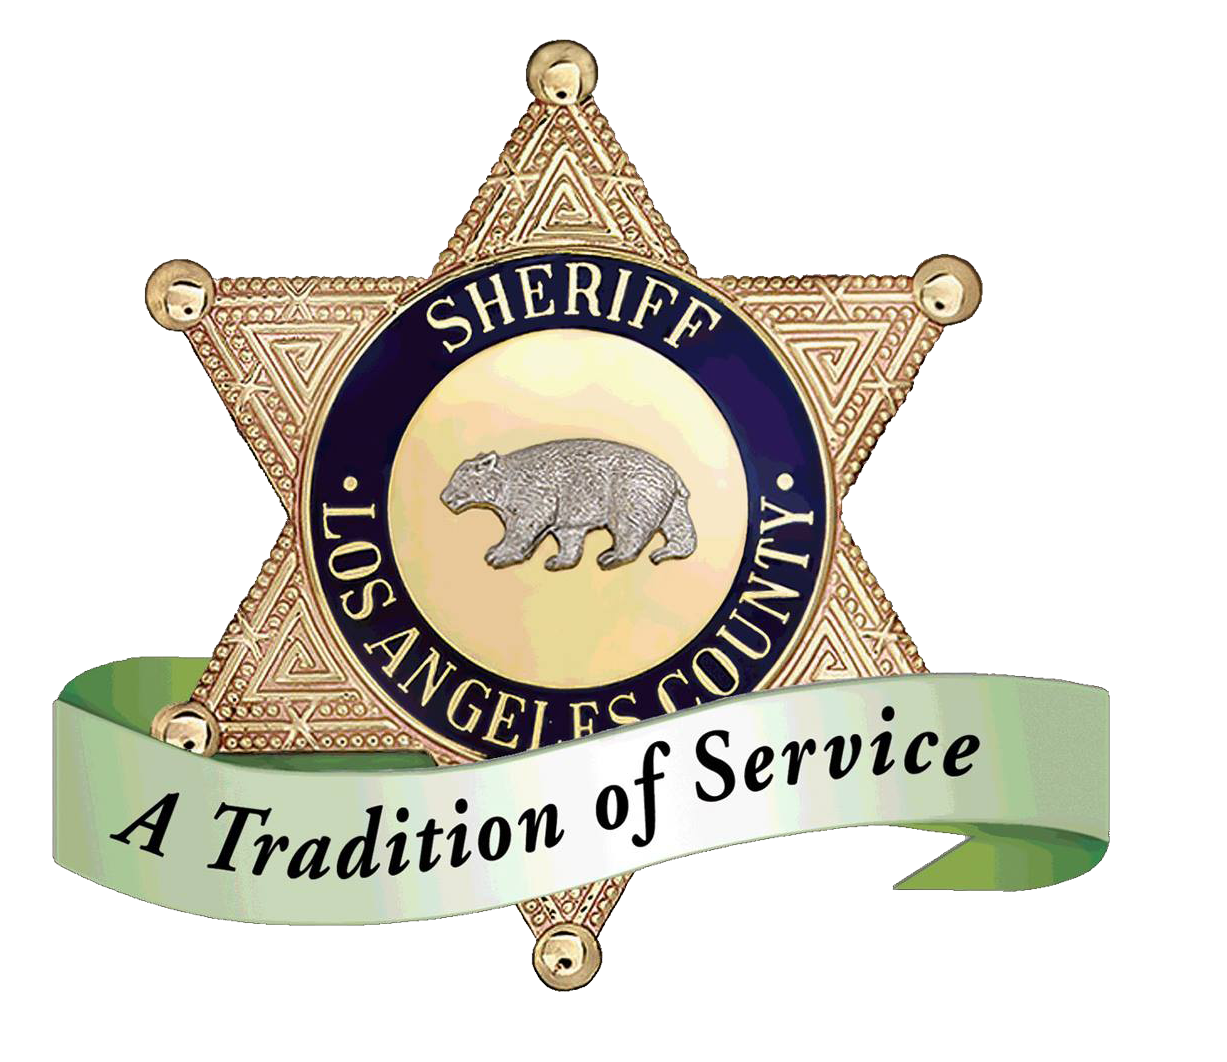 Los angeles county sheriffs department west hollywood station magicingreecefo Image collections